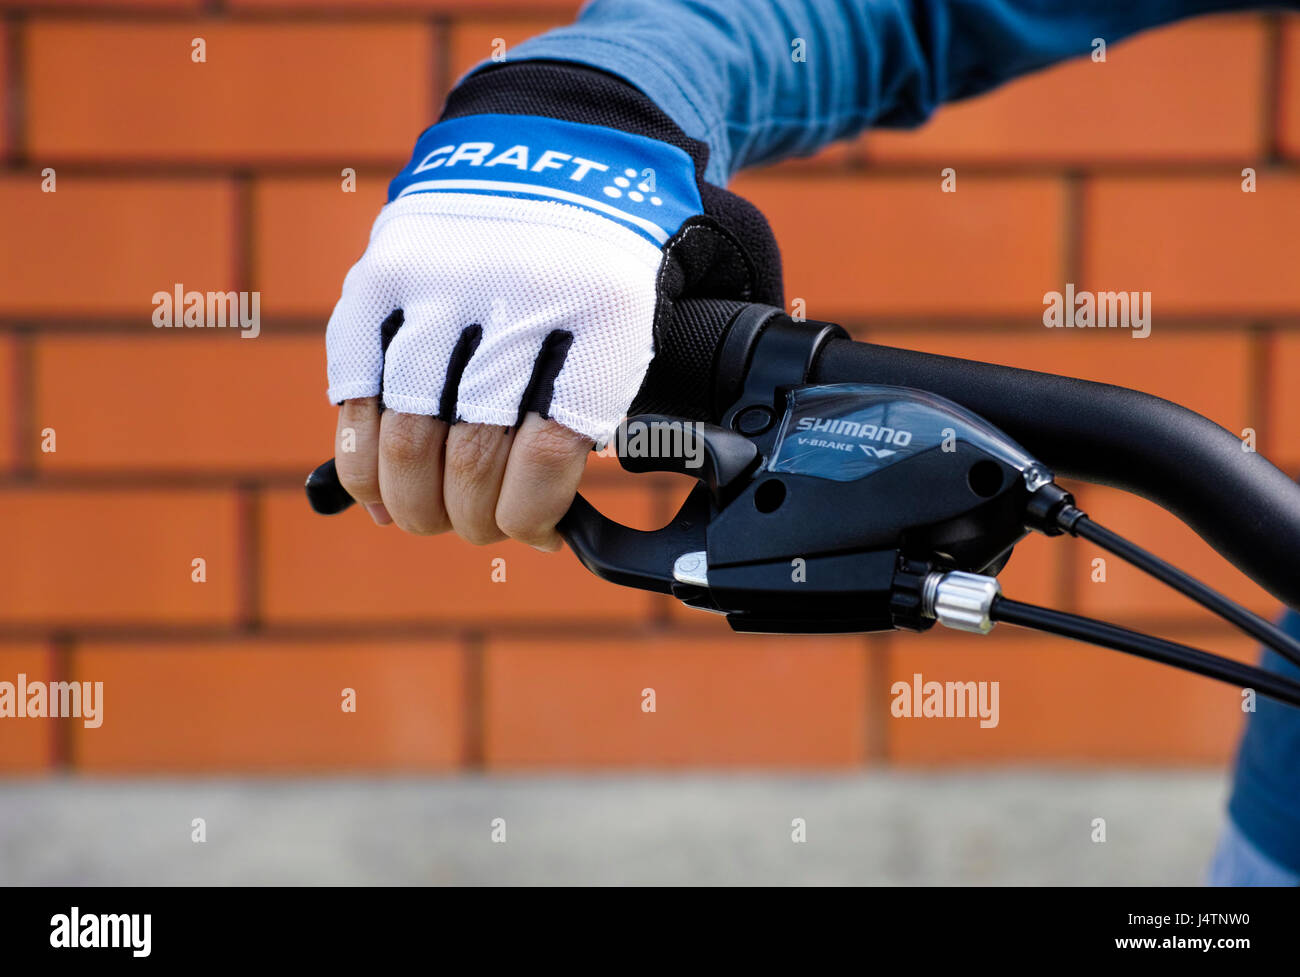 Tambov, Russian Federation - May 07, 2017 Child hand with Craft glove on handlebars with Shimano brake lever. - Stock Image